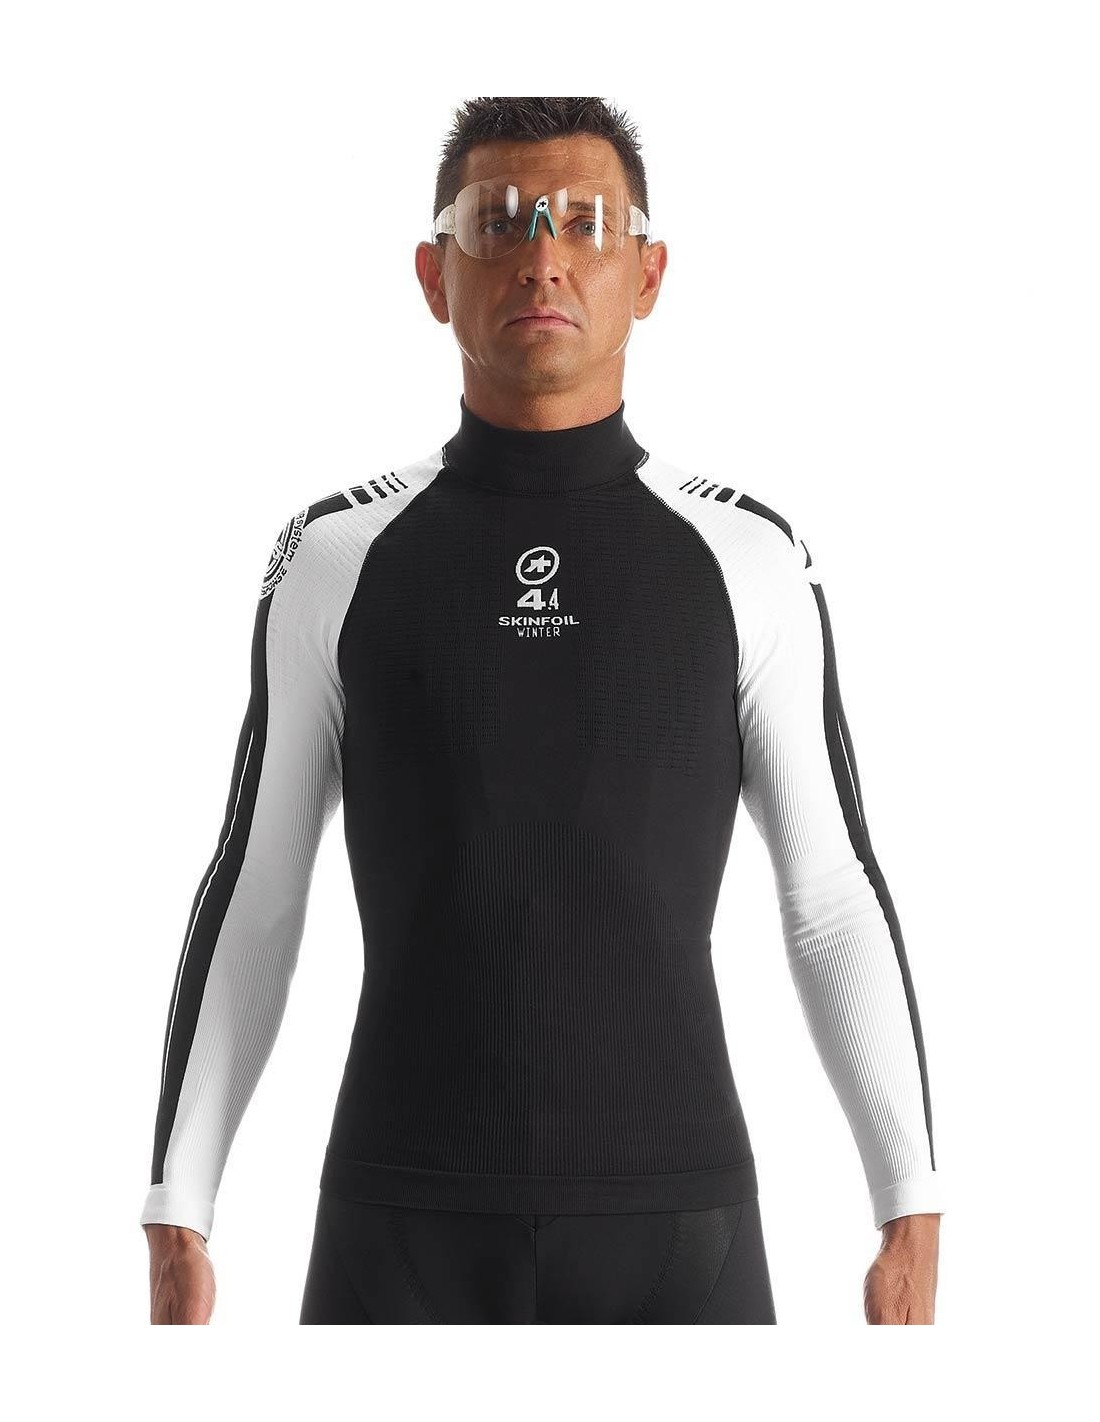 Maglia intima ASSOS LS.skinFoil early winter Bikecafe